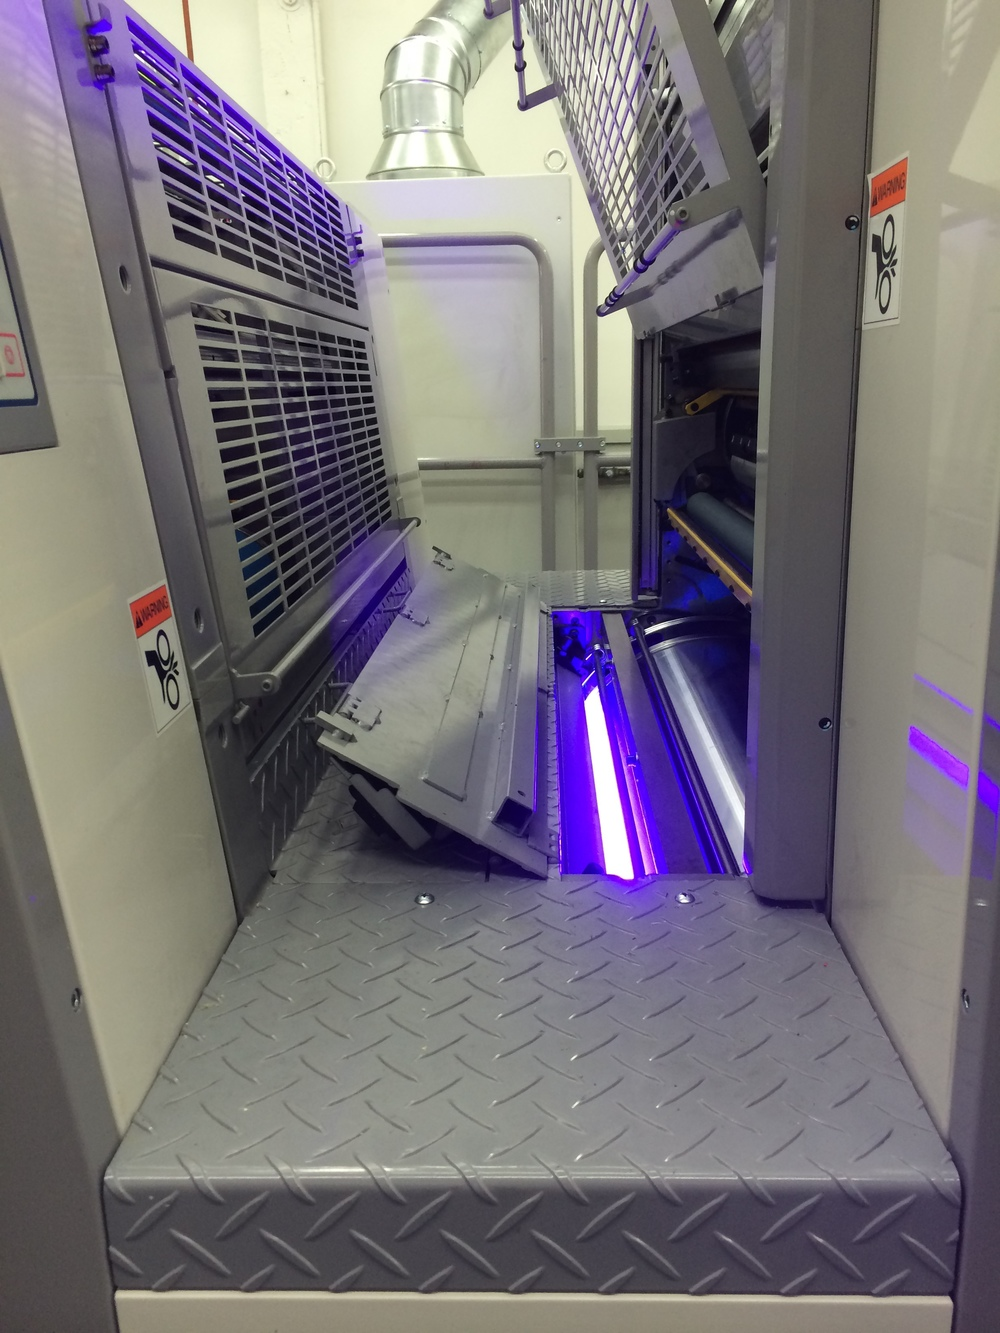 AMS XP7 Series LED UV Module Shown Installed in an Interdeck Location on a Sheetfed Offset Press